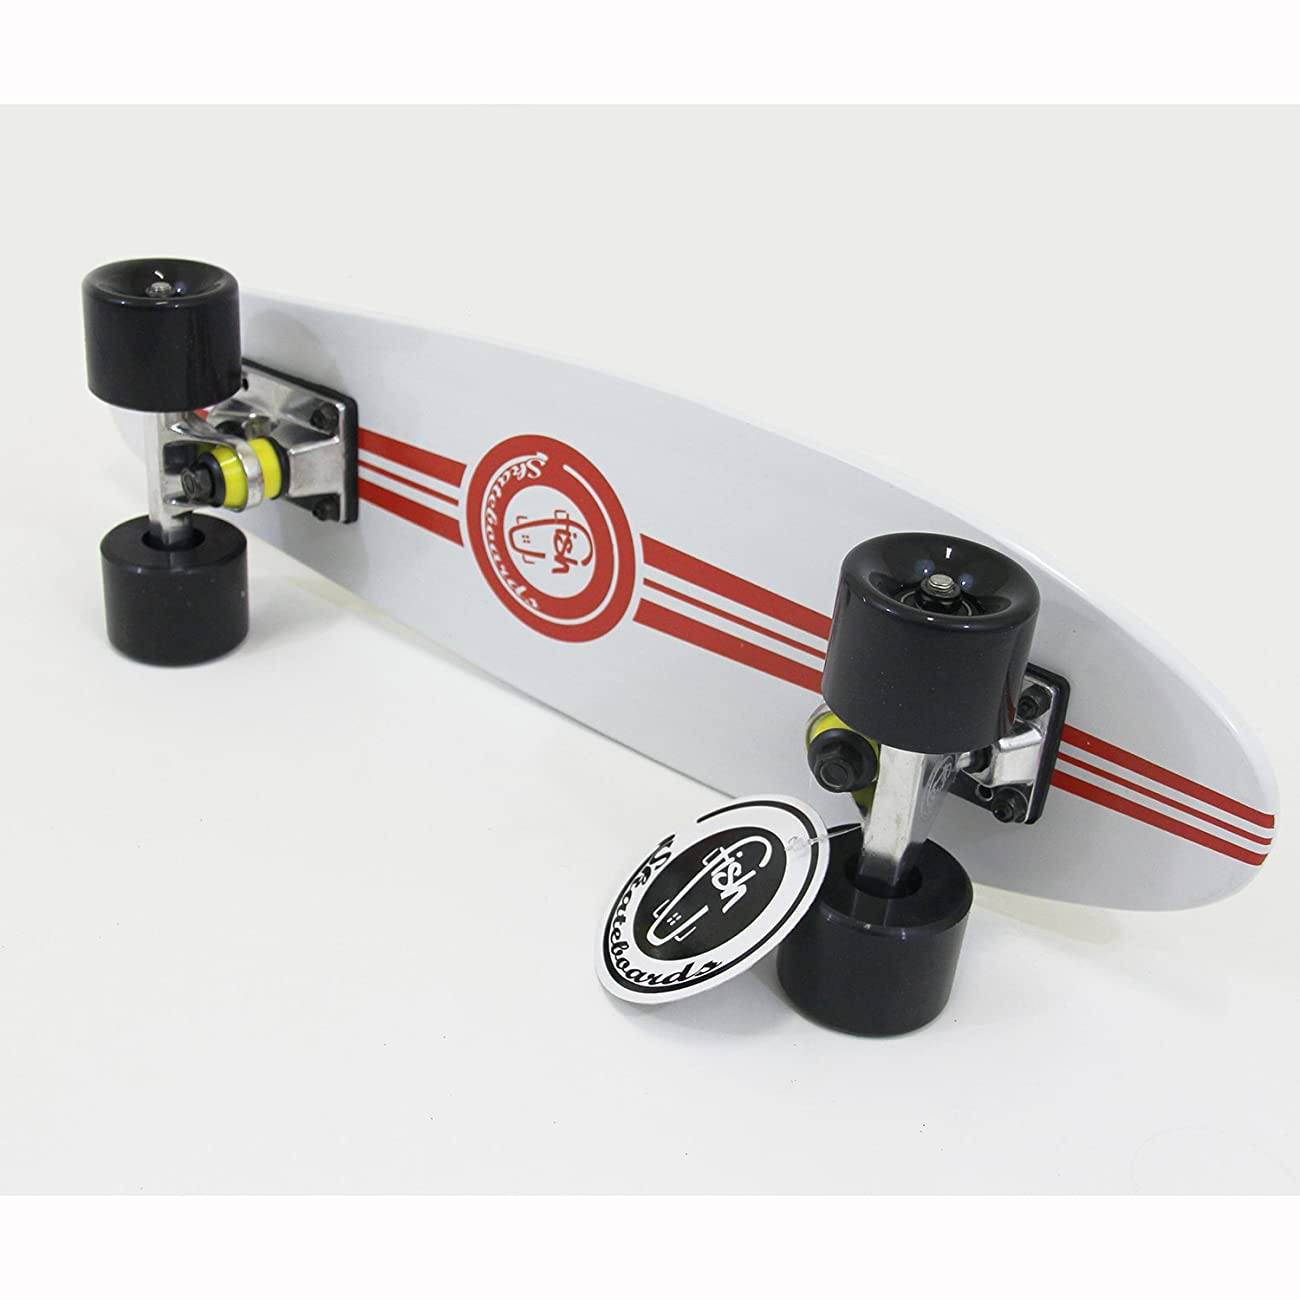 NEW White Fish Skateboard Wood Maple 22